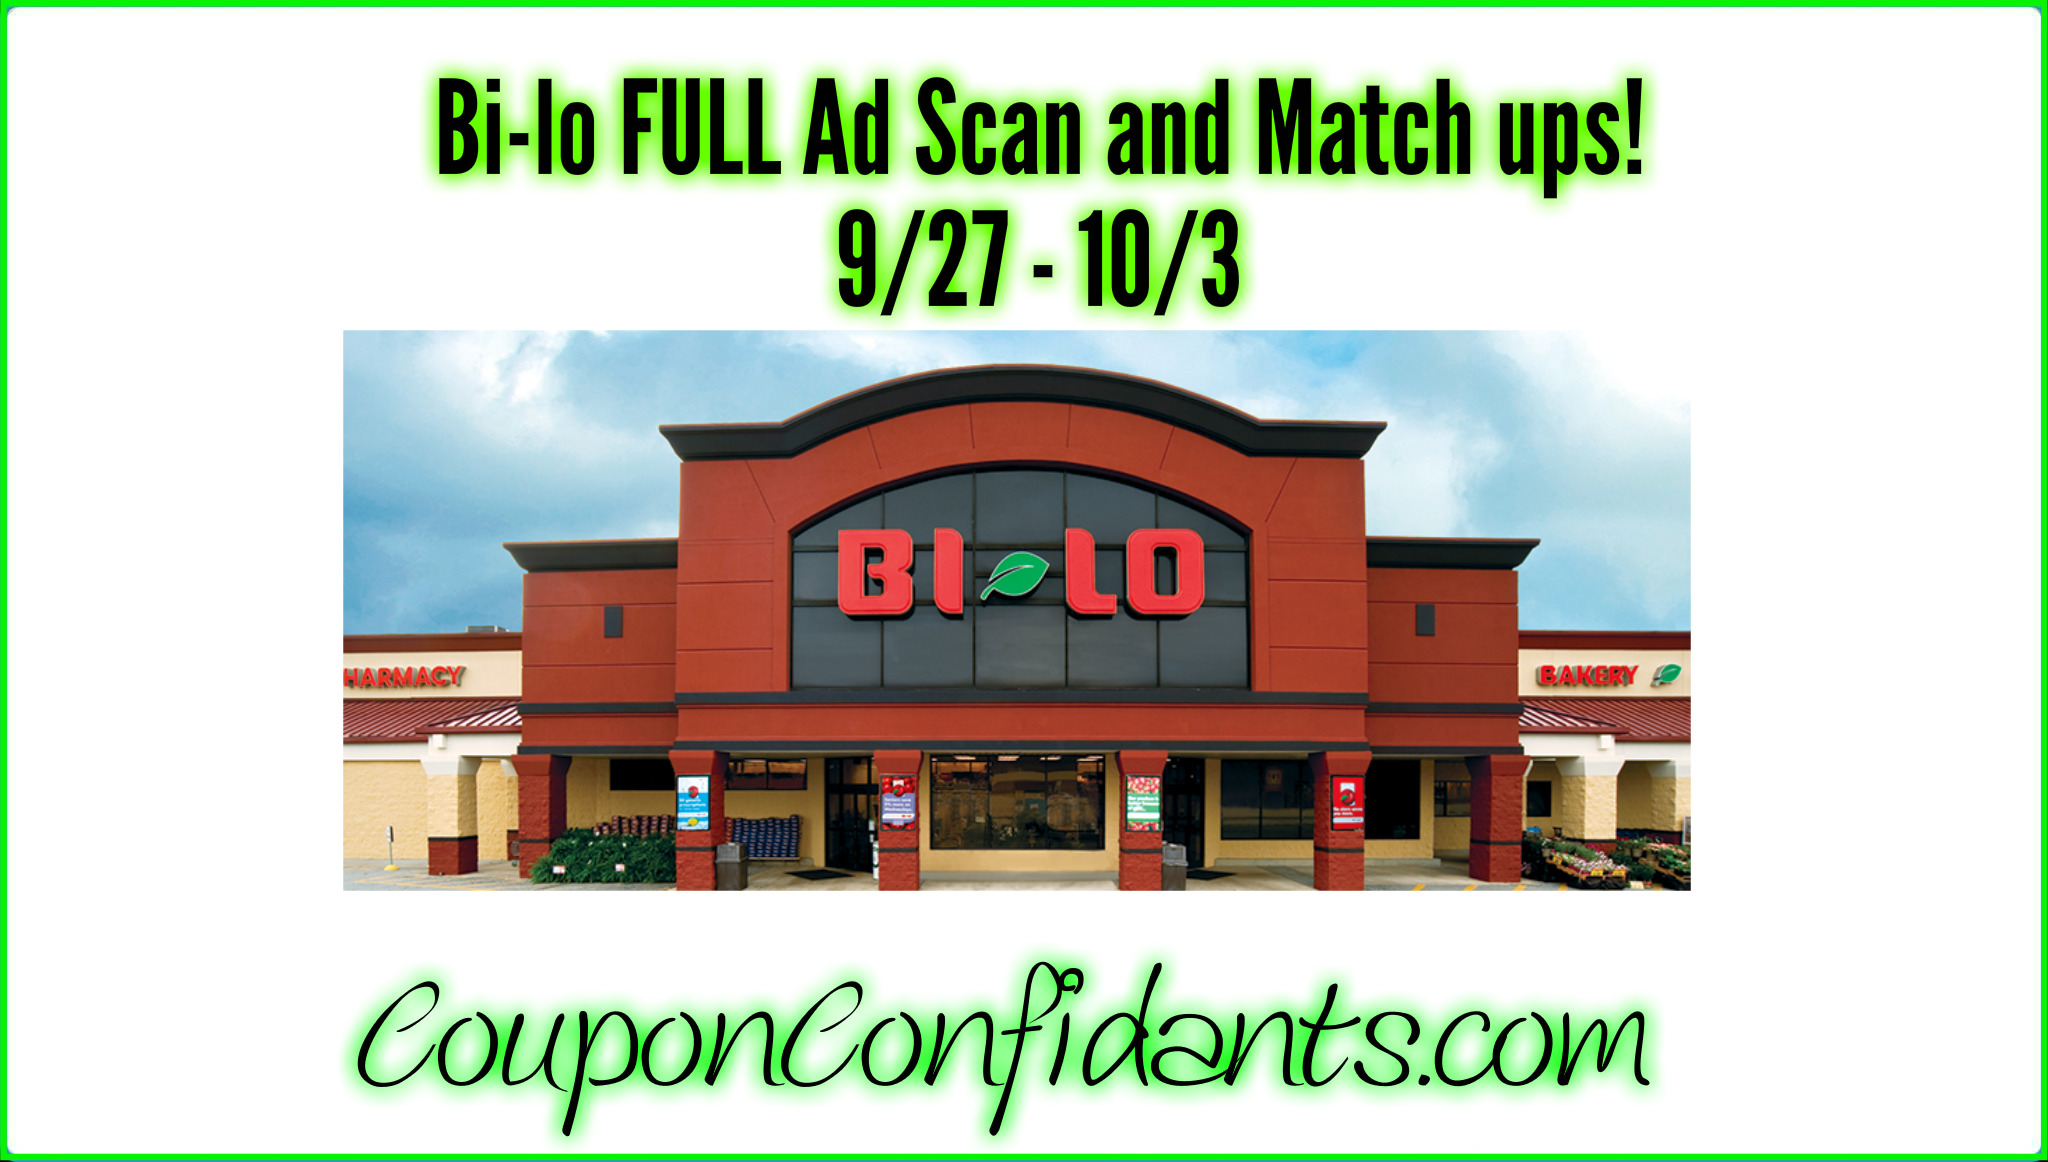 Bi-lo Ad Scan and Best deals are HERE! 9/27 - 10/3